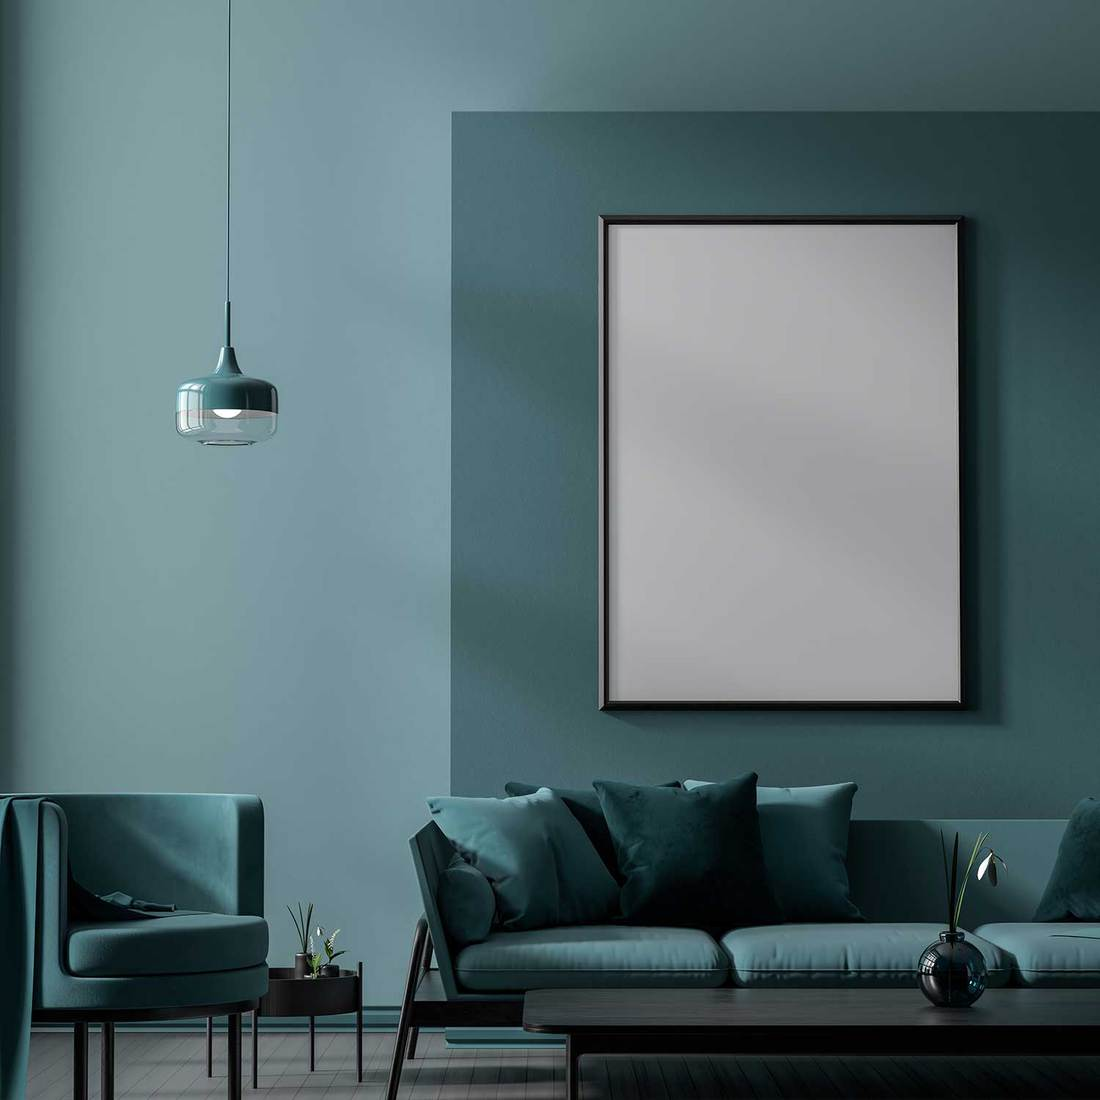 Scandinavian style interior with modern furnitures and poster frame on wall